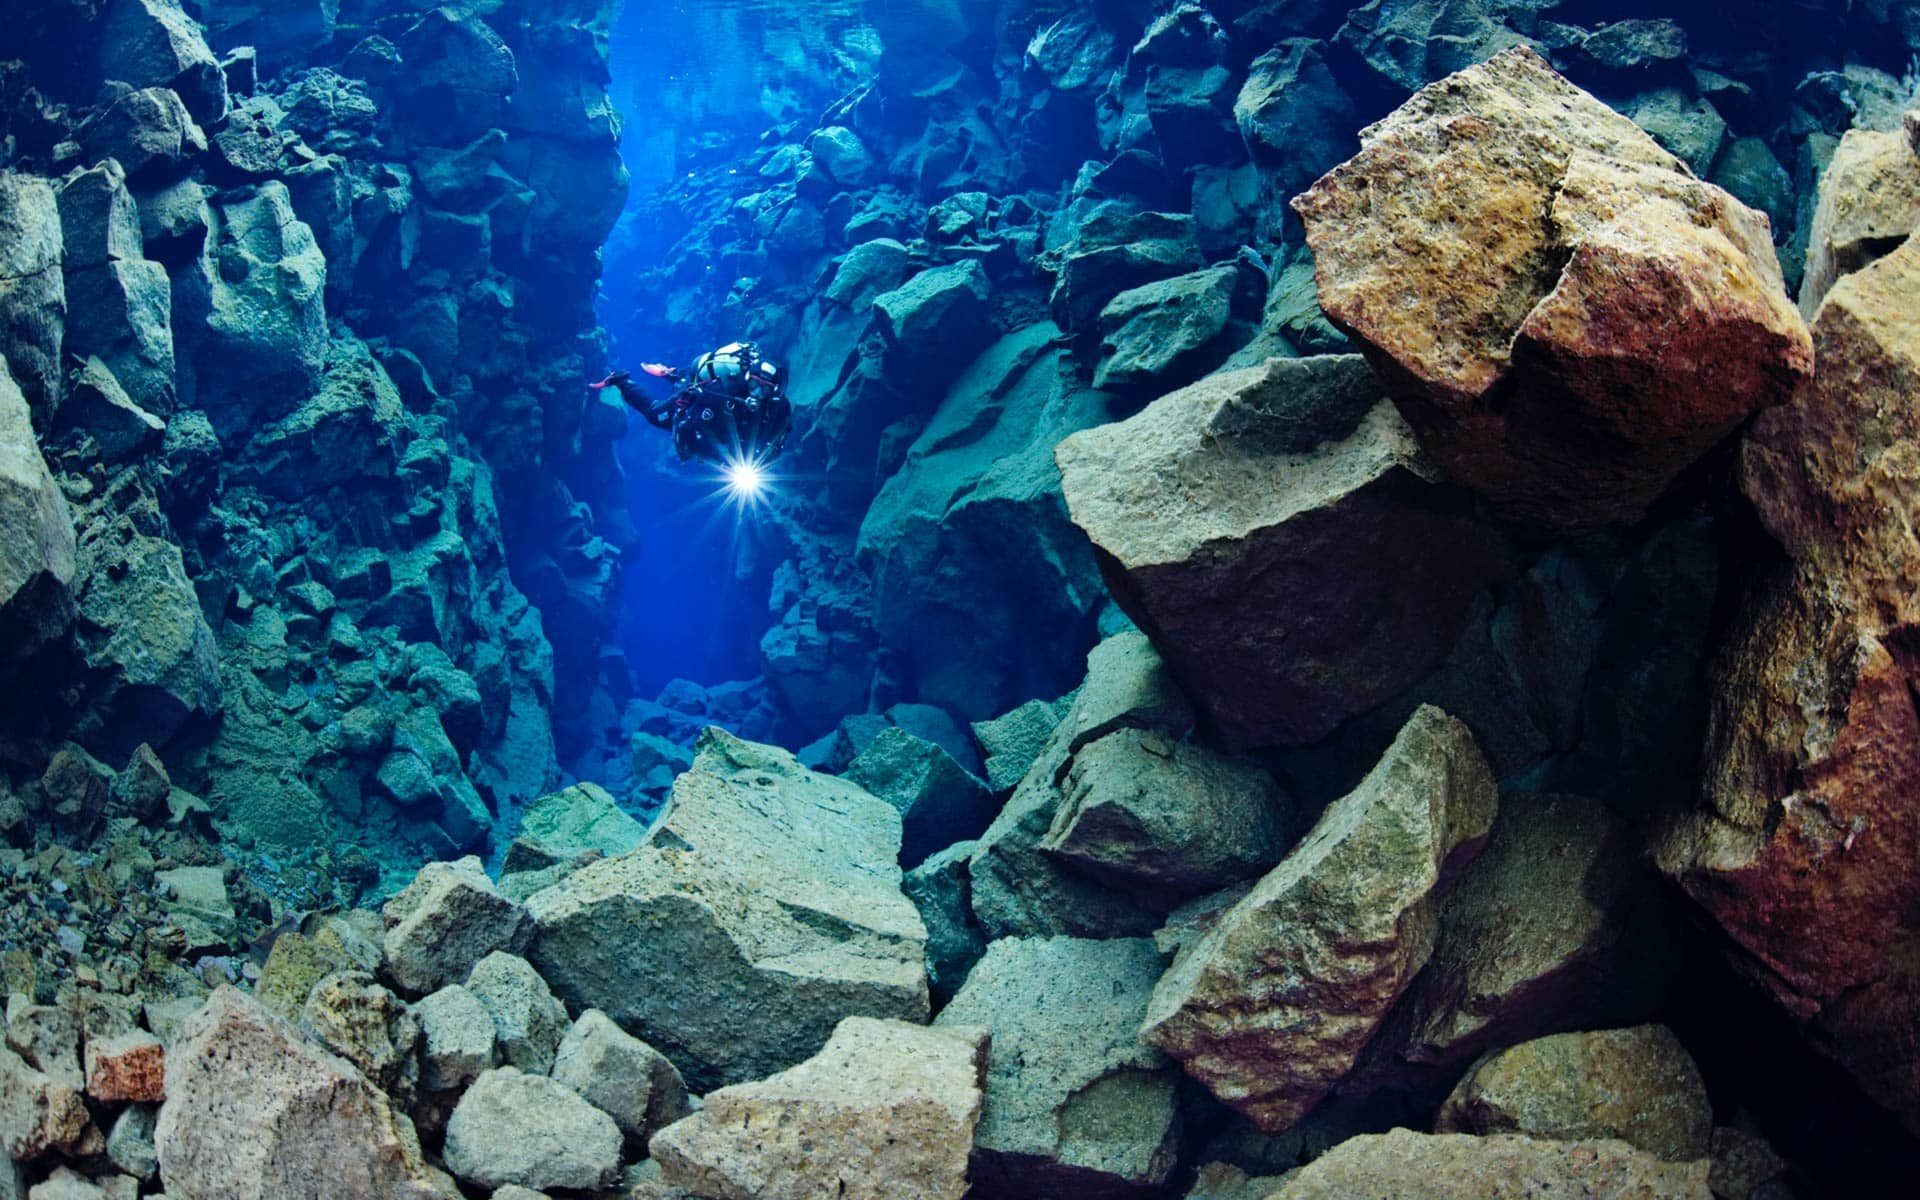 Diving between the tectonic plates in Silfra